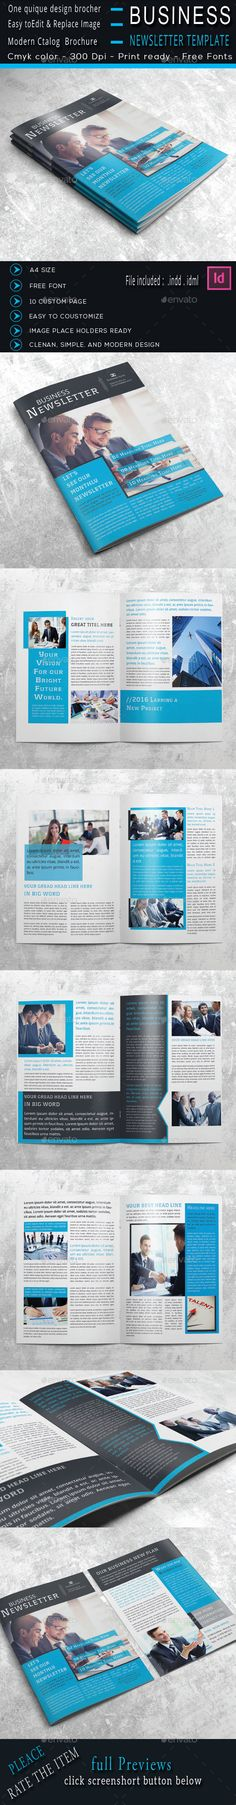 Starling Page Business Newsletter  Starling Templates And Business